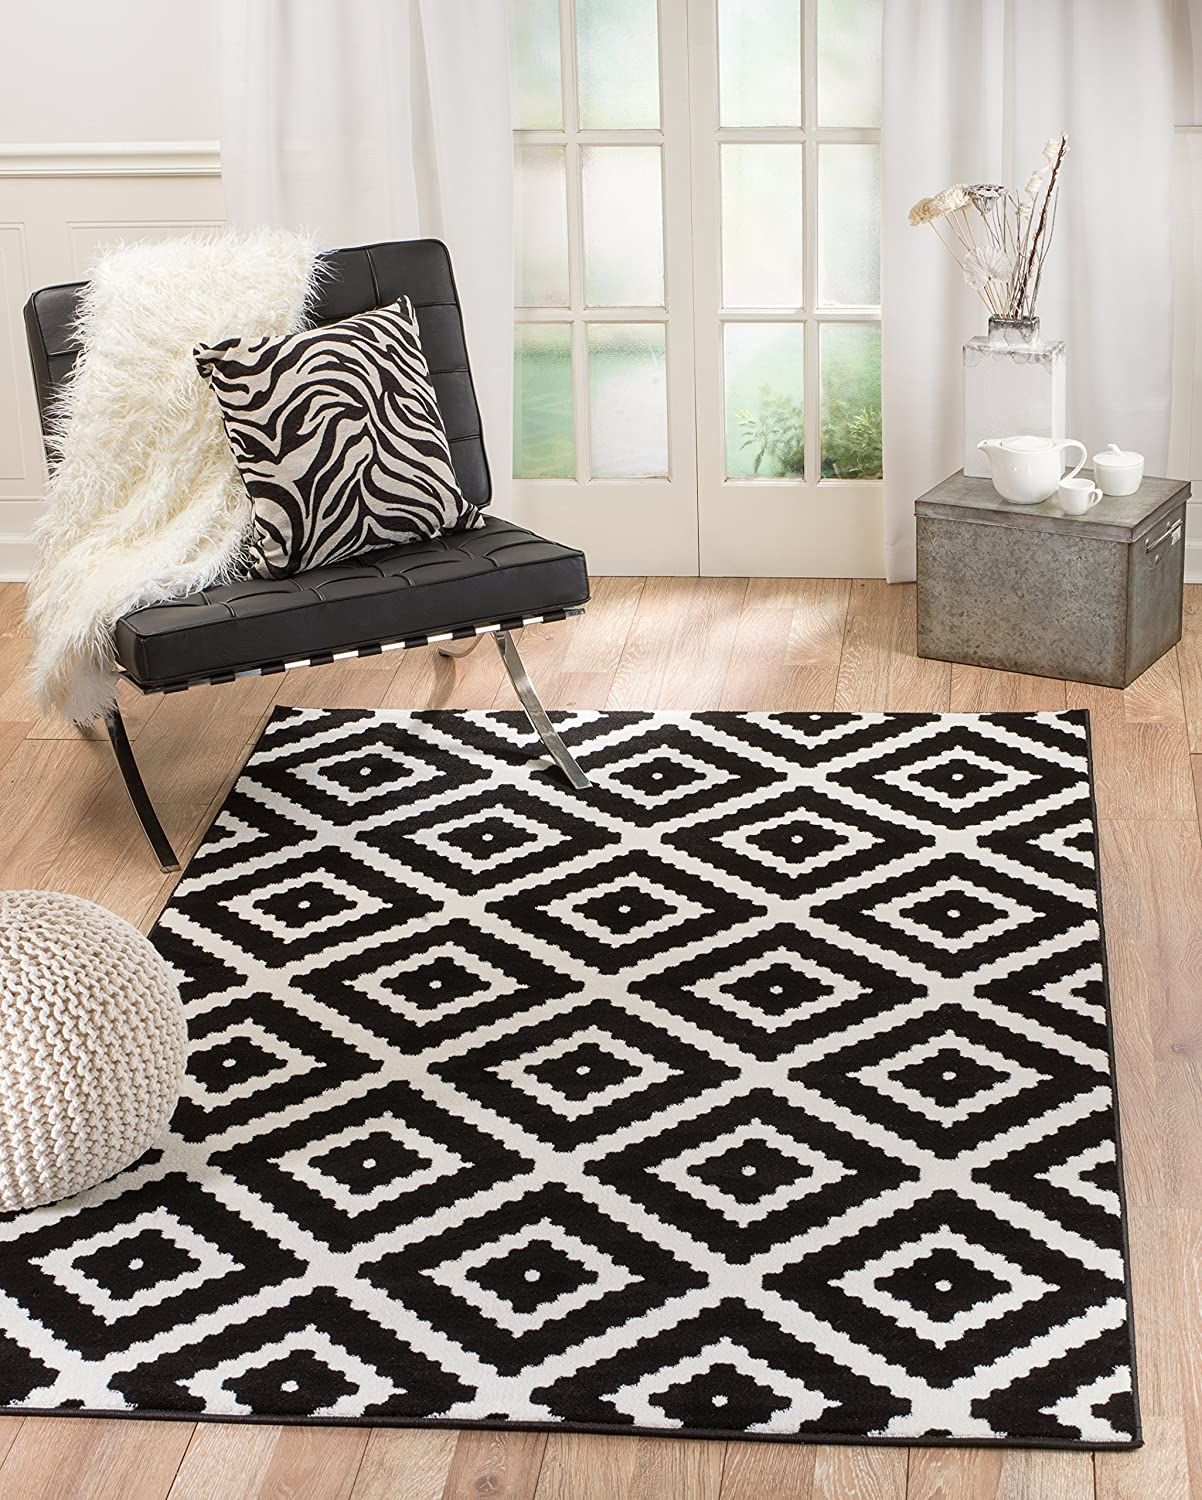 Amazon com summit rb fpbh c7yl 46 black white diamond area rug modern abstract many sizes available 7 4 x 10 6 kitchen dining